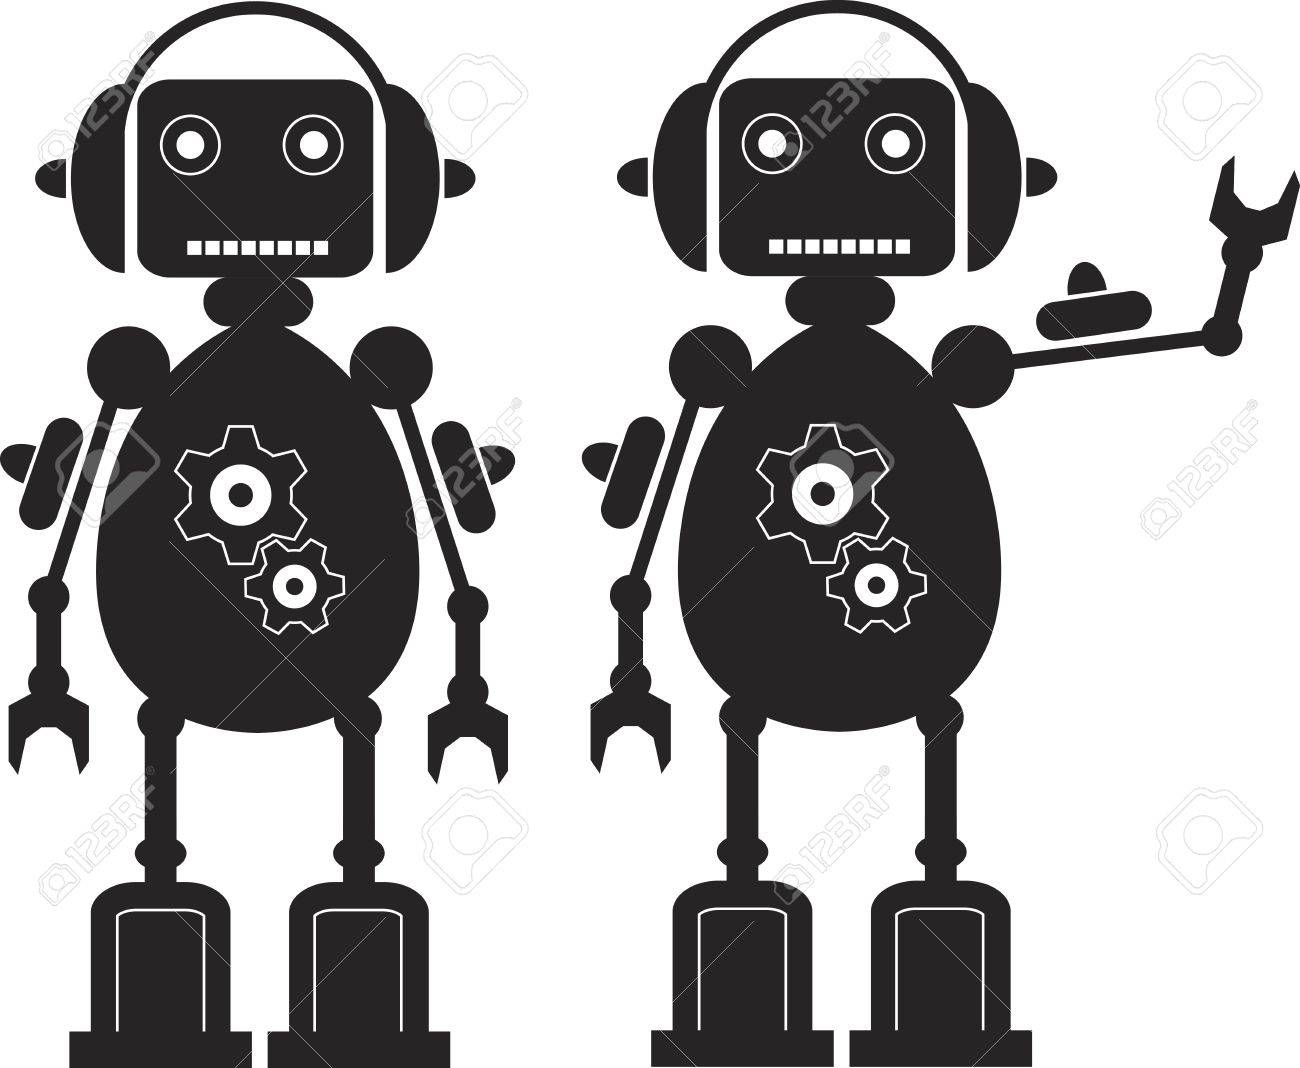 Two Black Friendly Robots with Gears, Headphones. - 15313294